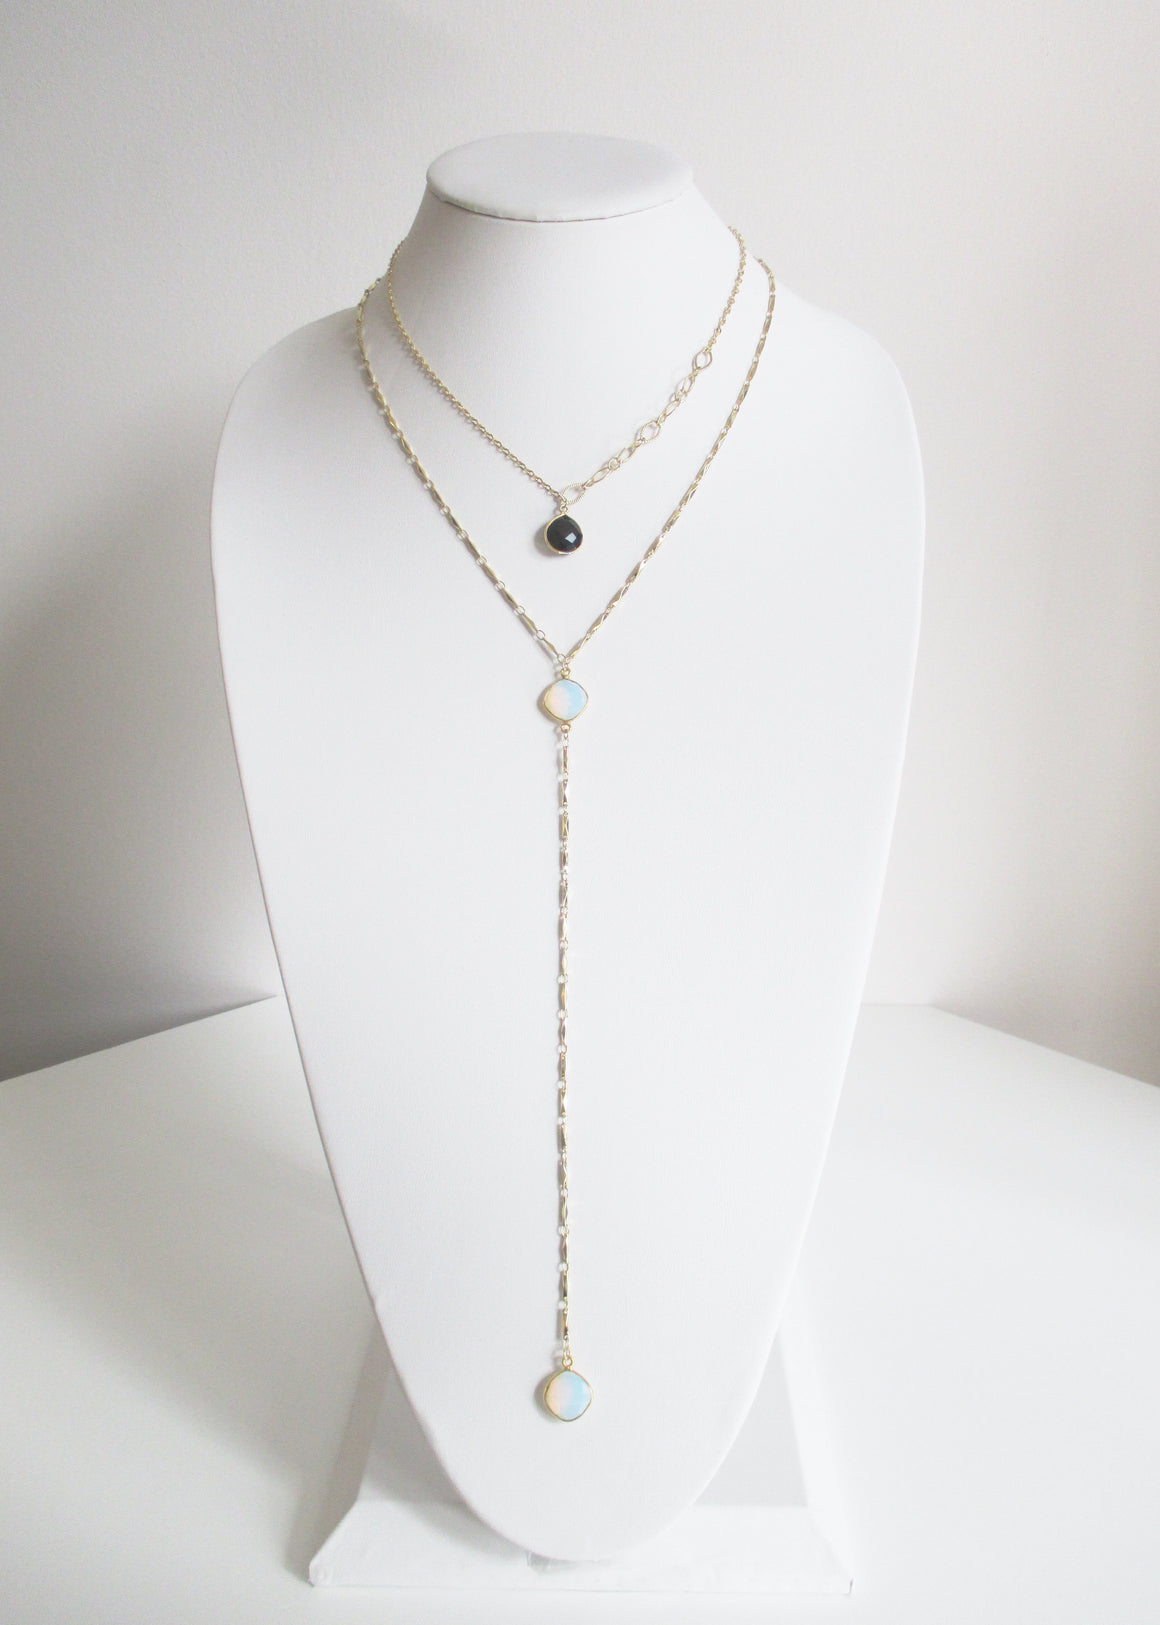 MG ANYA CELESTE Y NECKLACE WHITE OPAL (A SOLD OUT)